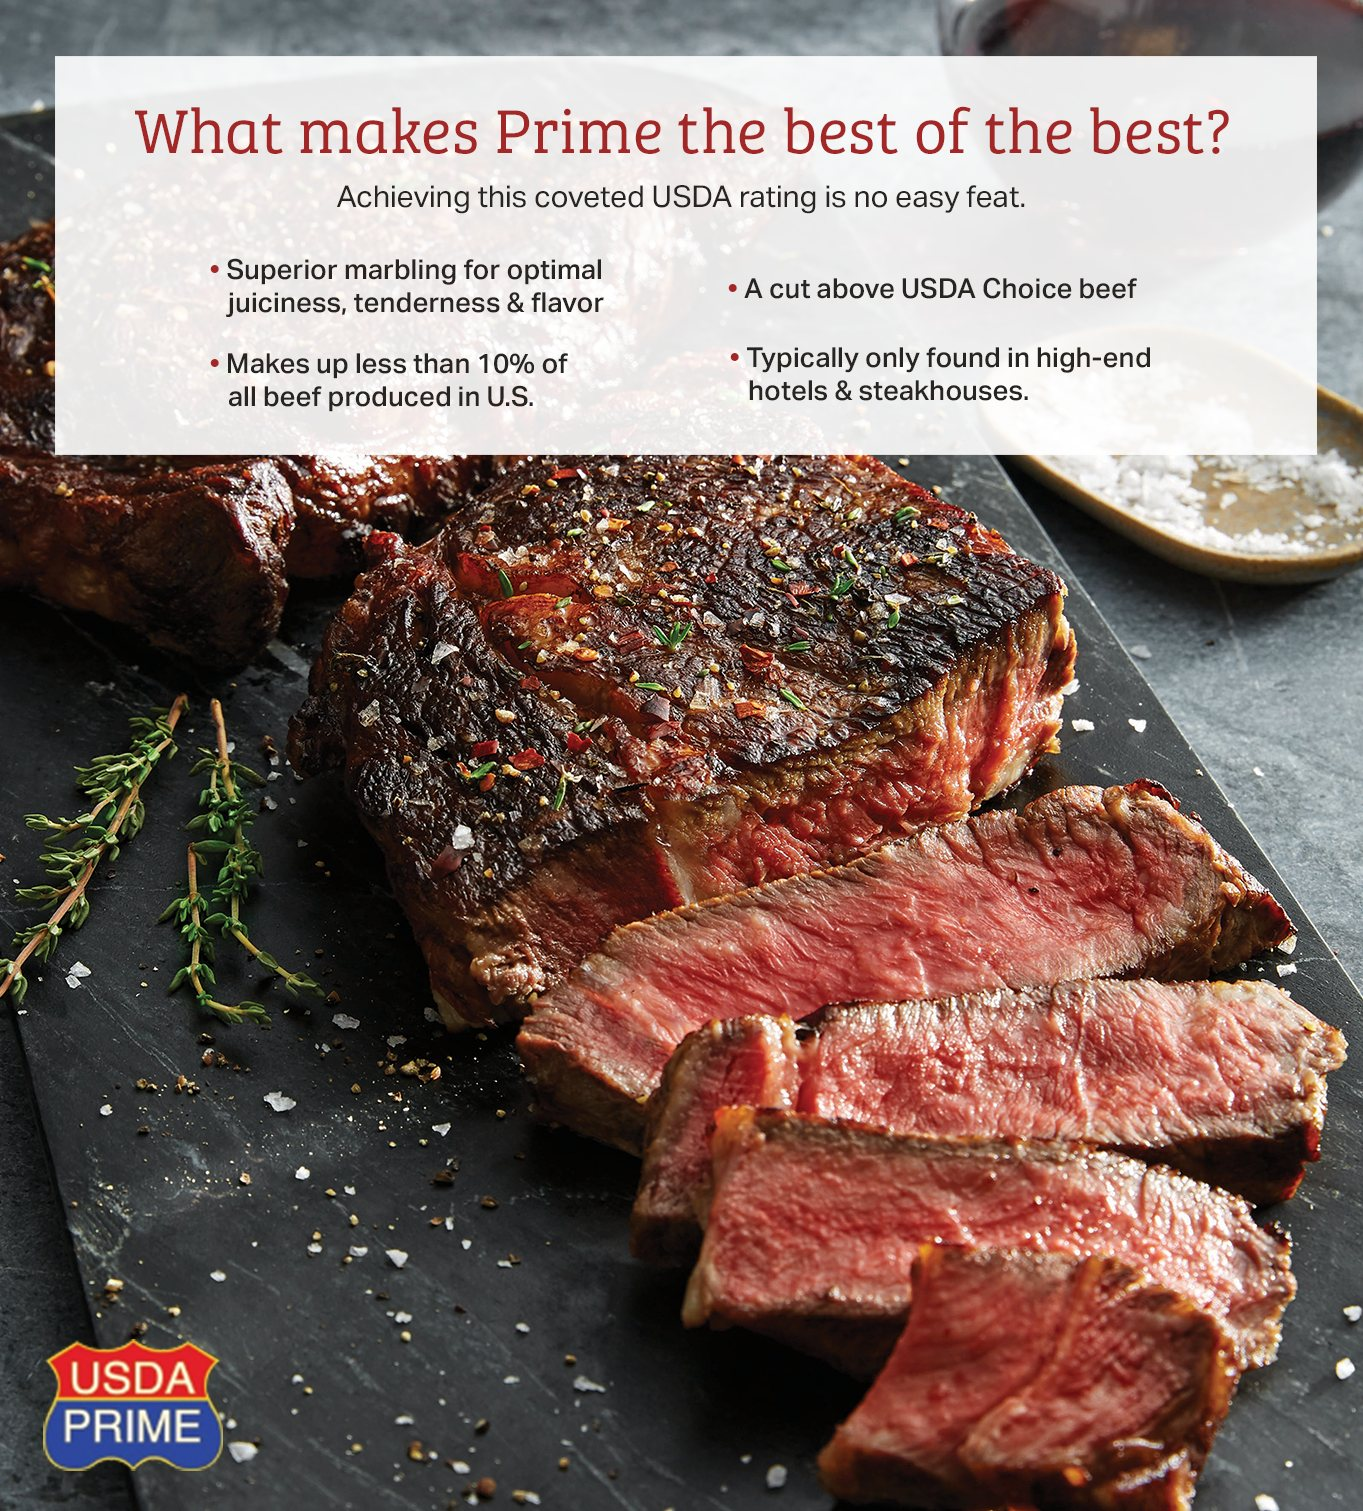 Prime beef makes up less than 10 percent of all beef made in the U.S. and is known for its superior marbling.